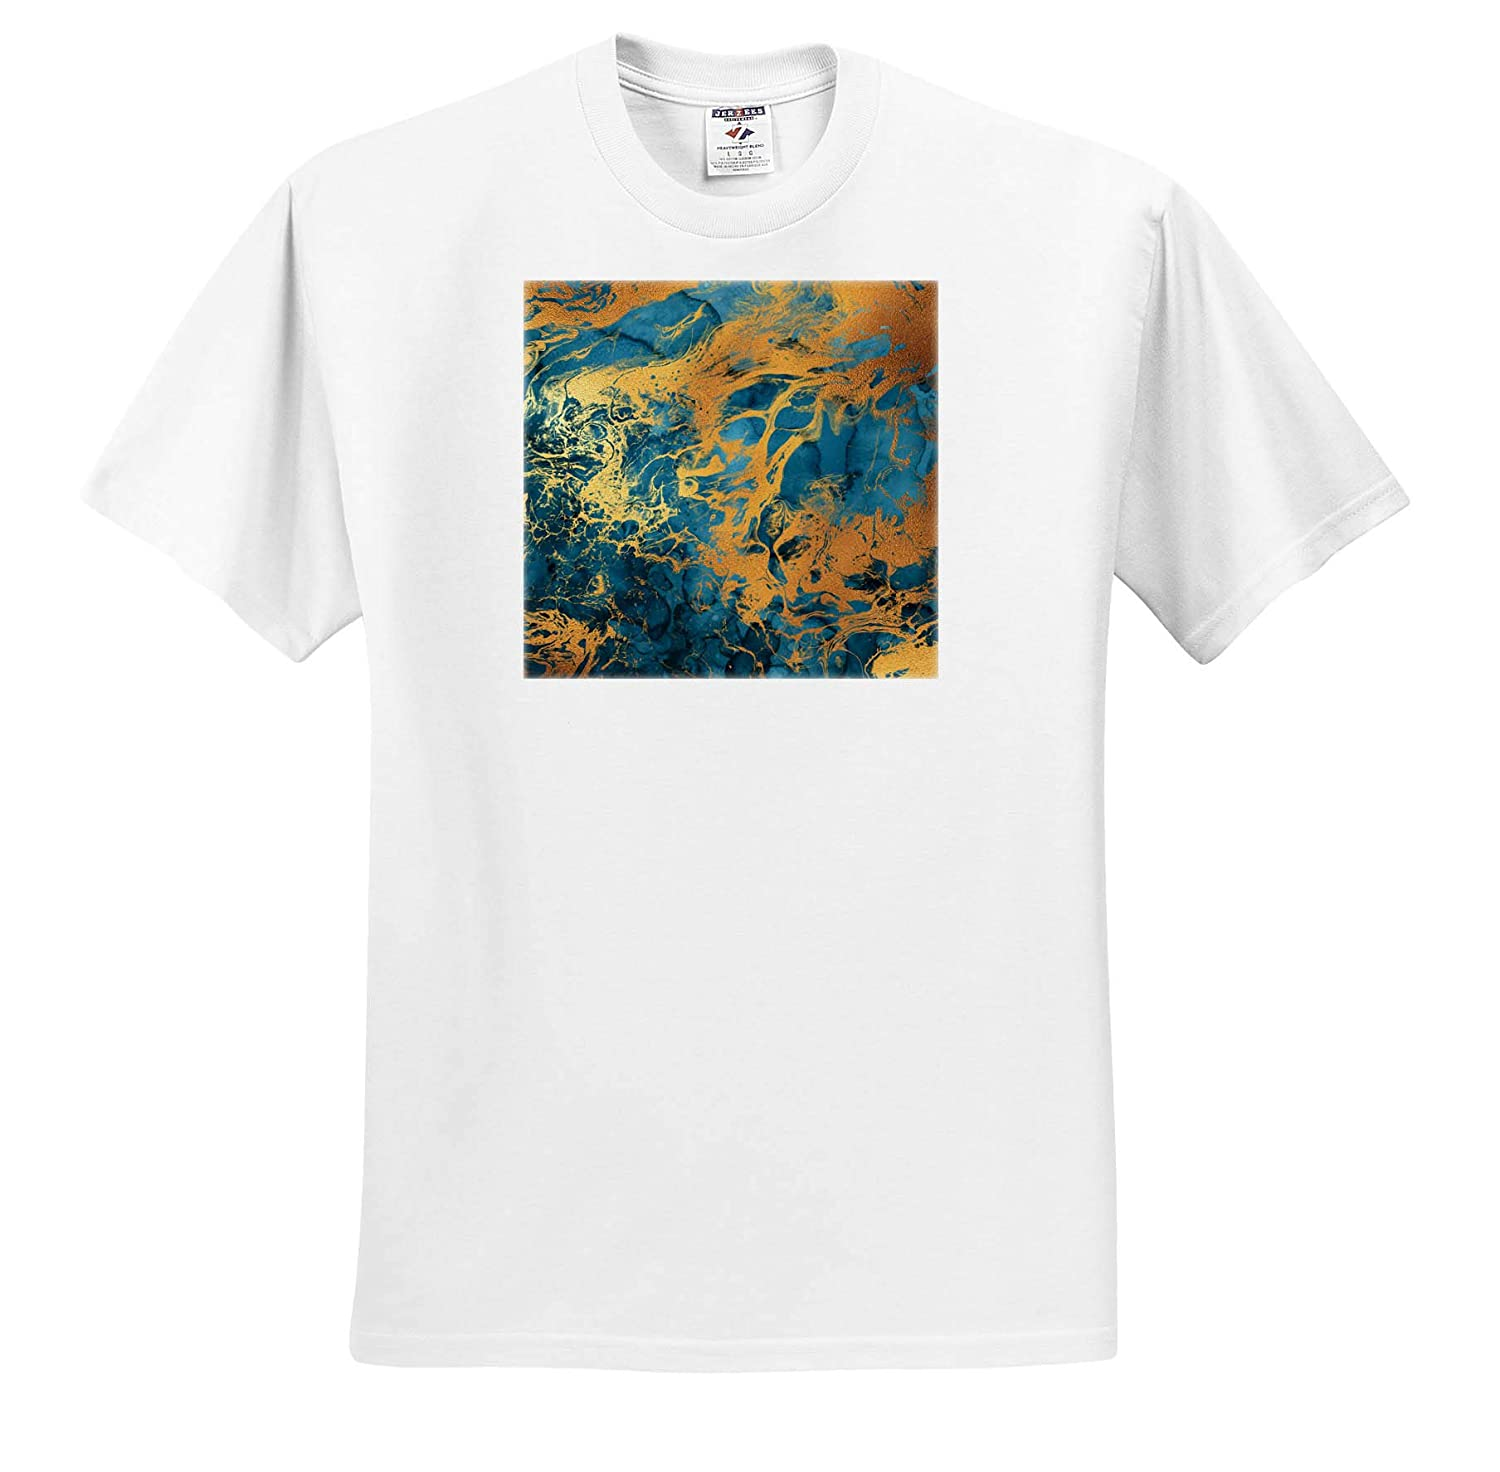 Blue Image of Watercolor and Gold Color Abstract Wash Effect T-Shirts Abstract 3dRose Anne Marie Baugh